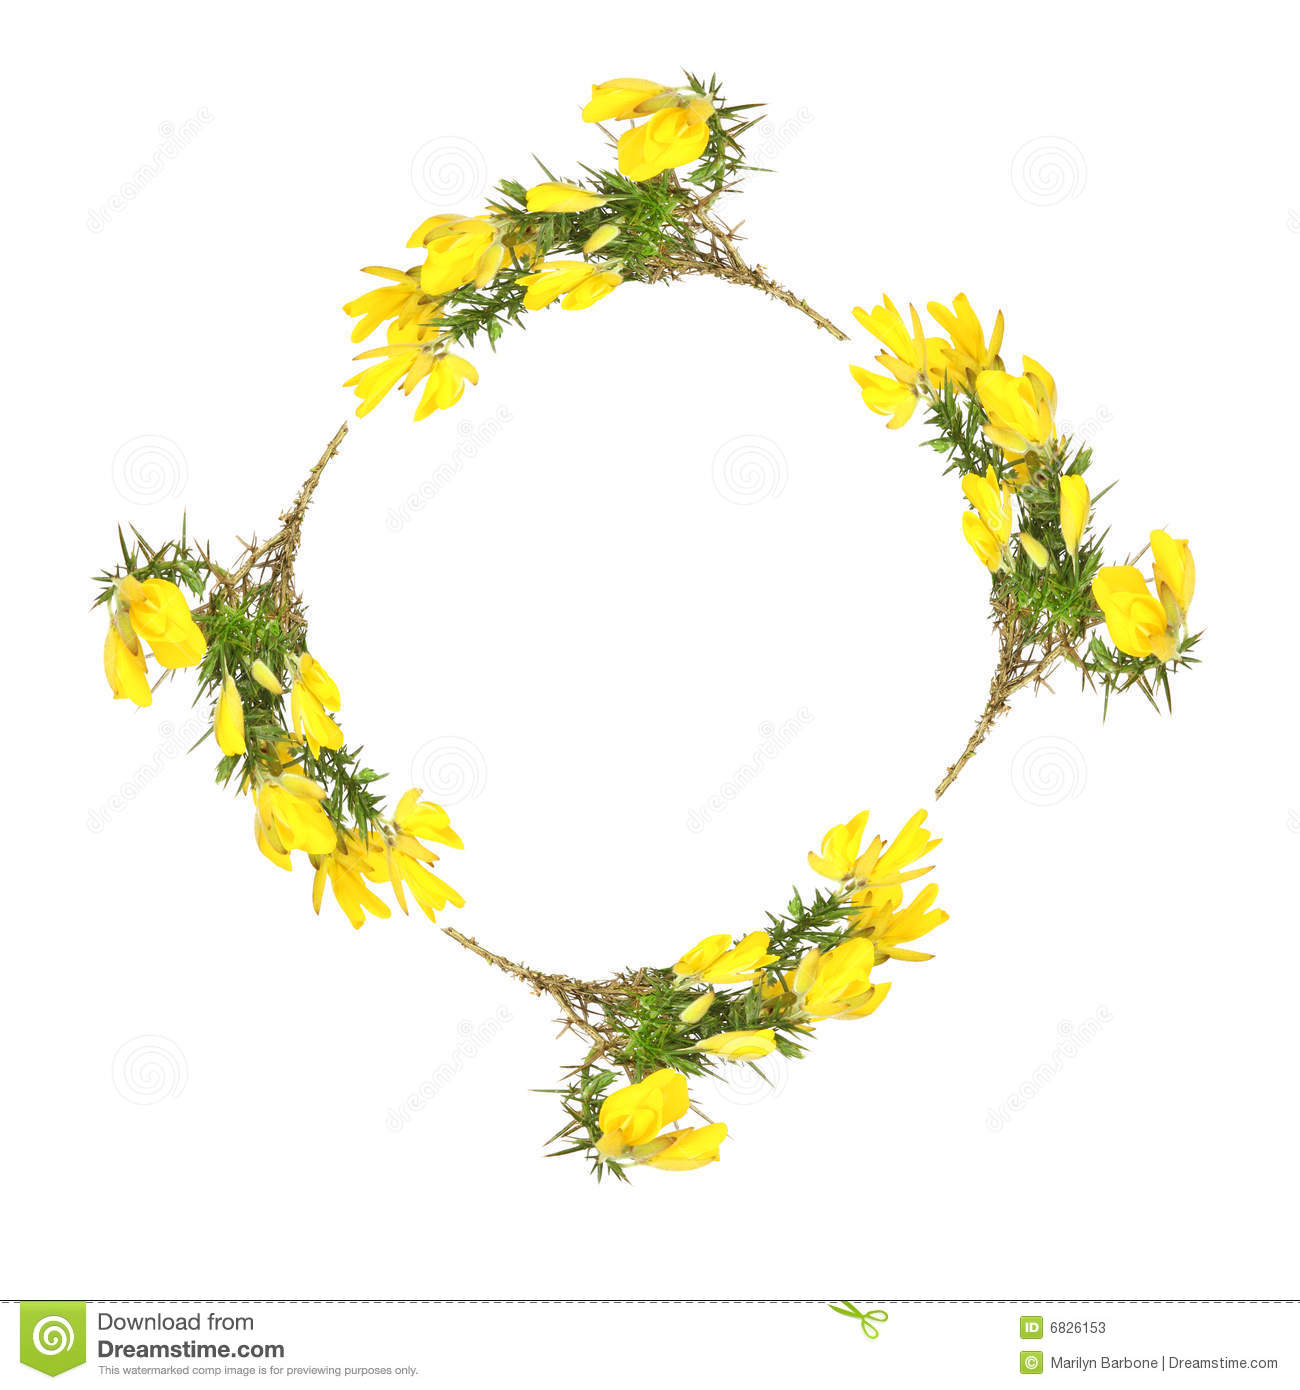 ... forming a circular garland, creating a border, over white background